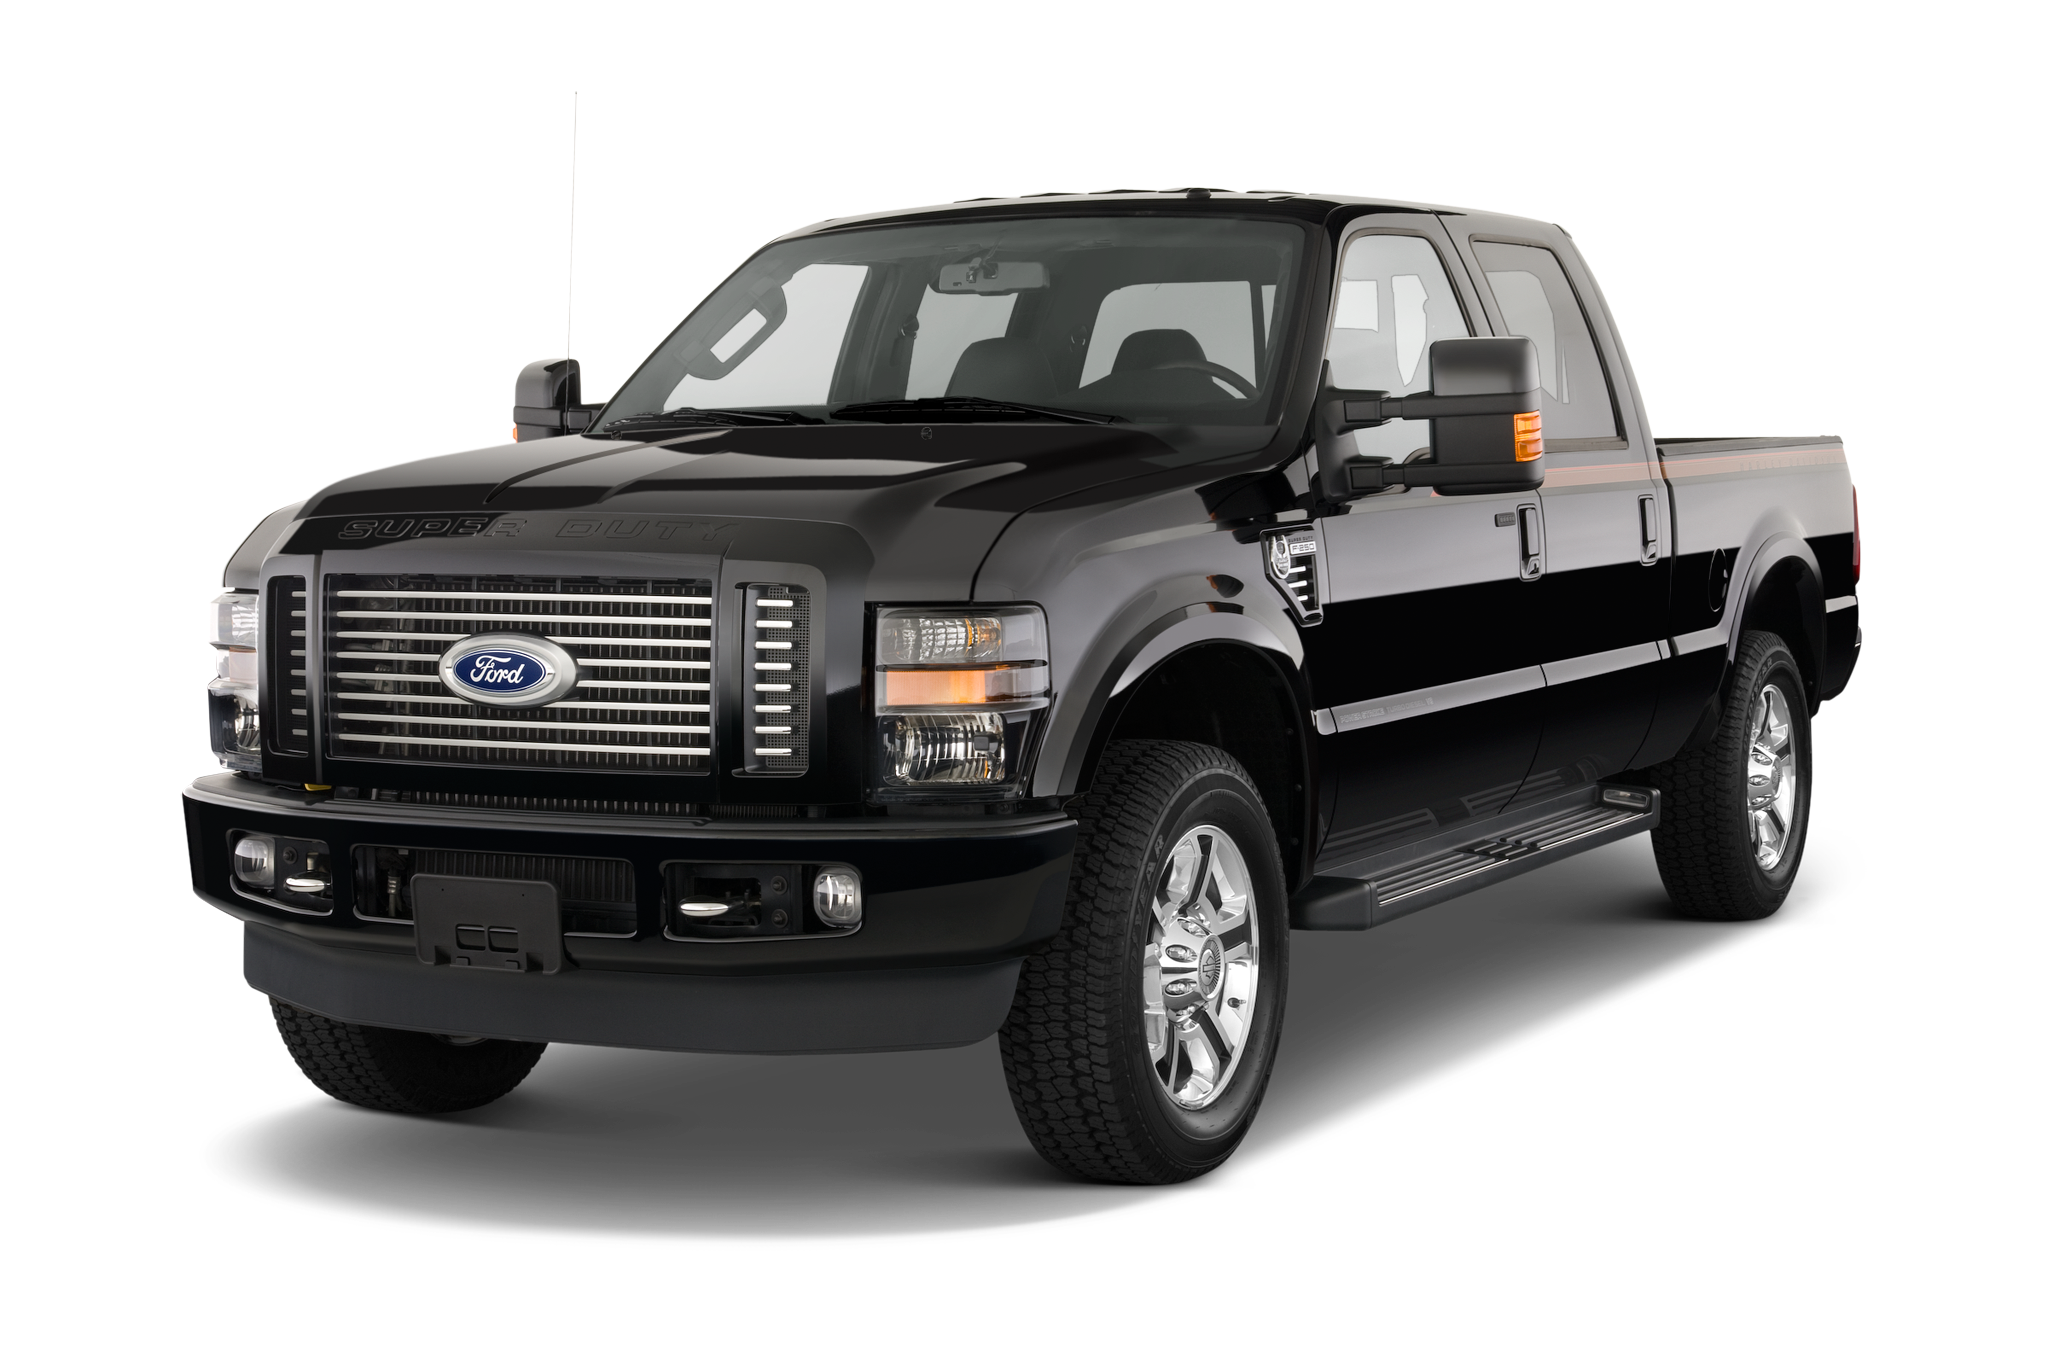 2011 ford f 250 king ranch 4x4 automobile magazine. Black Bedroom Furniture Sets. Home Design Ideas